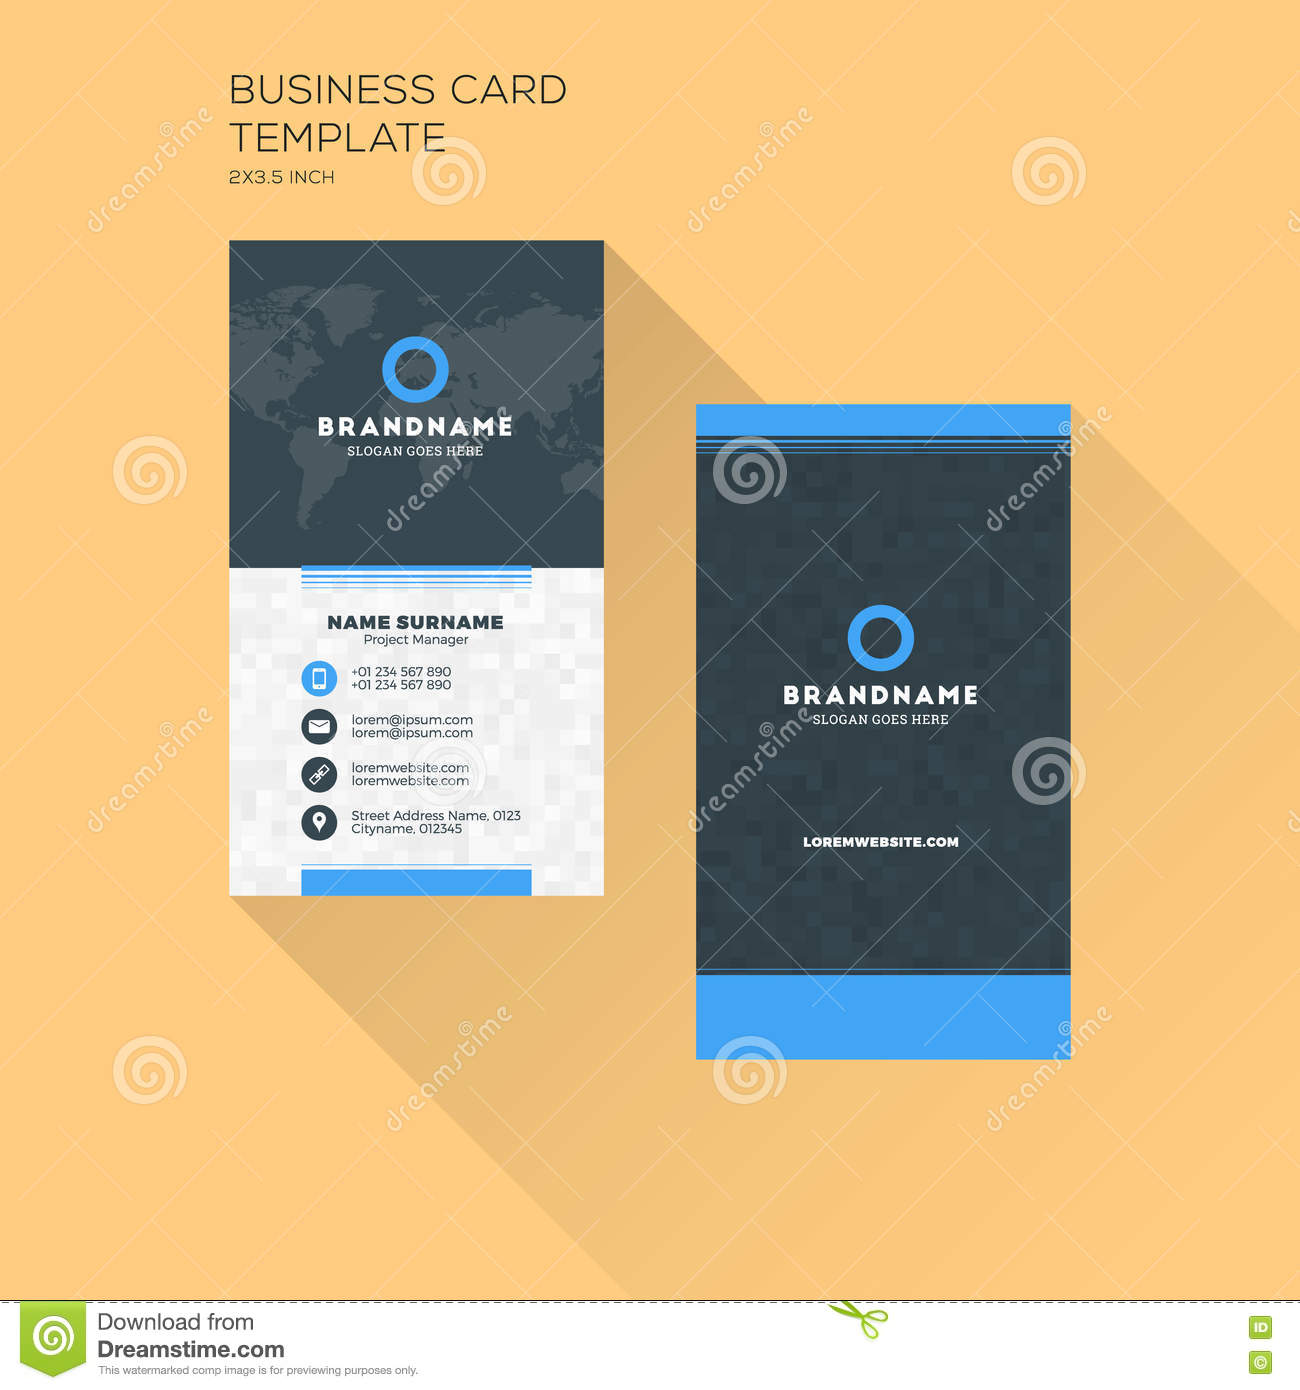 Vertical business card print template personal business card wi vertical business card print template personal business card wi fbccfo